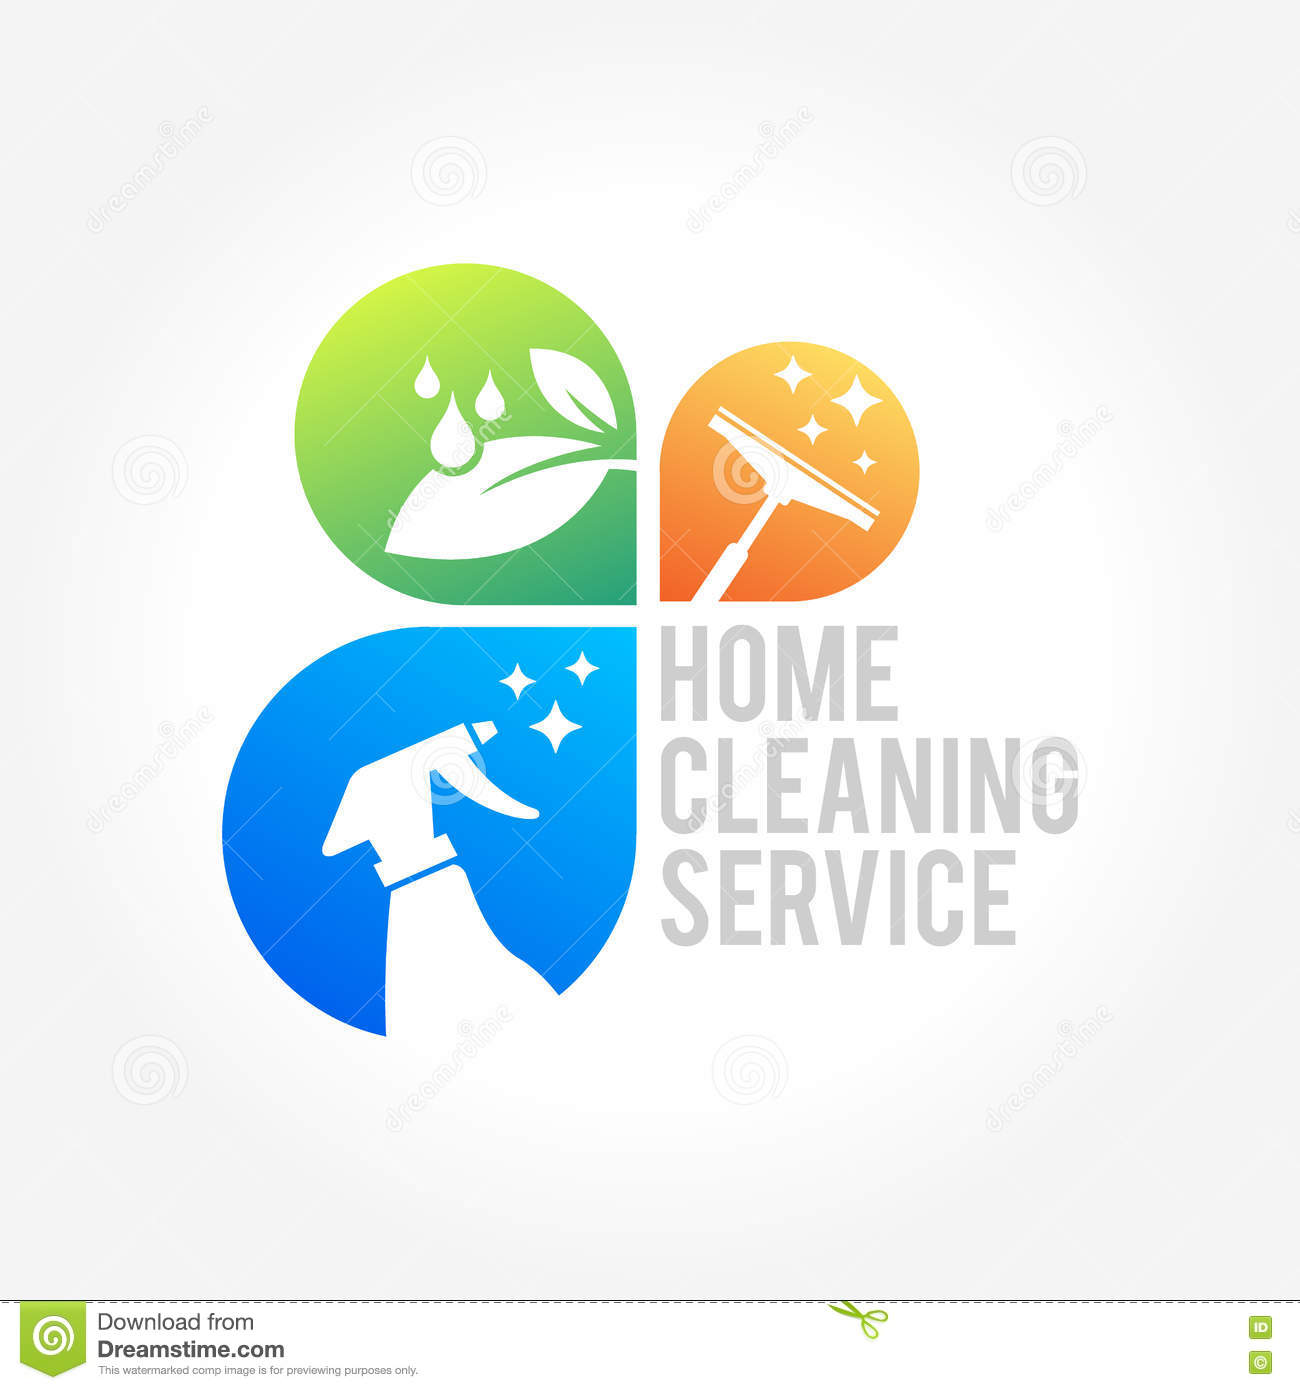 Housecleaning Cartoons Illustrations Vector Stock Images 206 Pictures To Download From